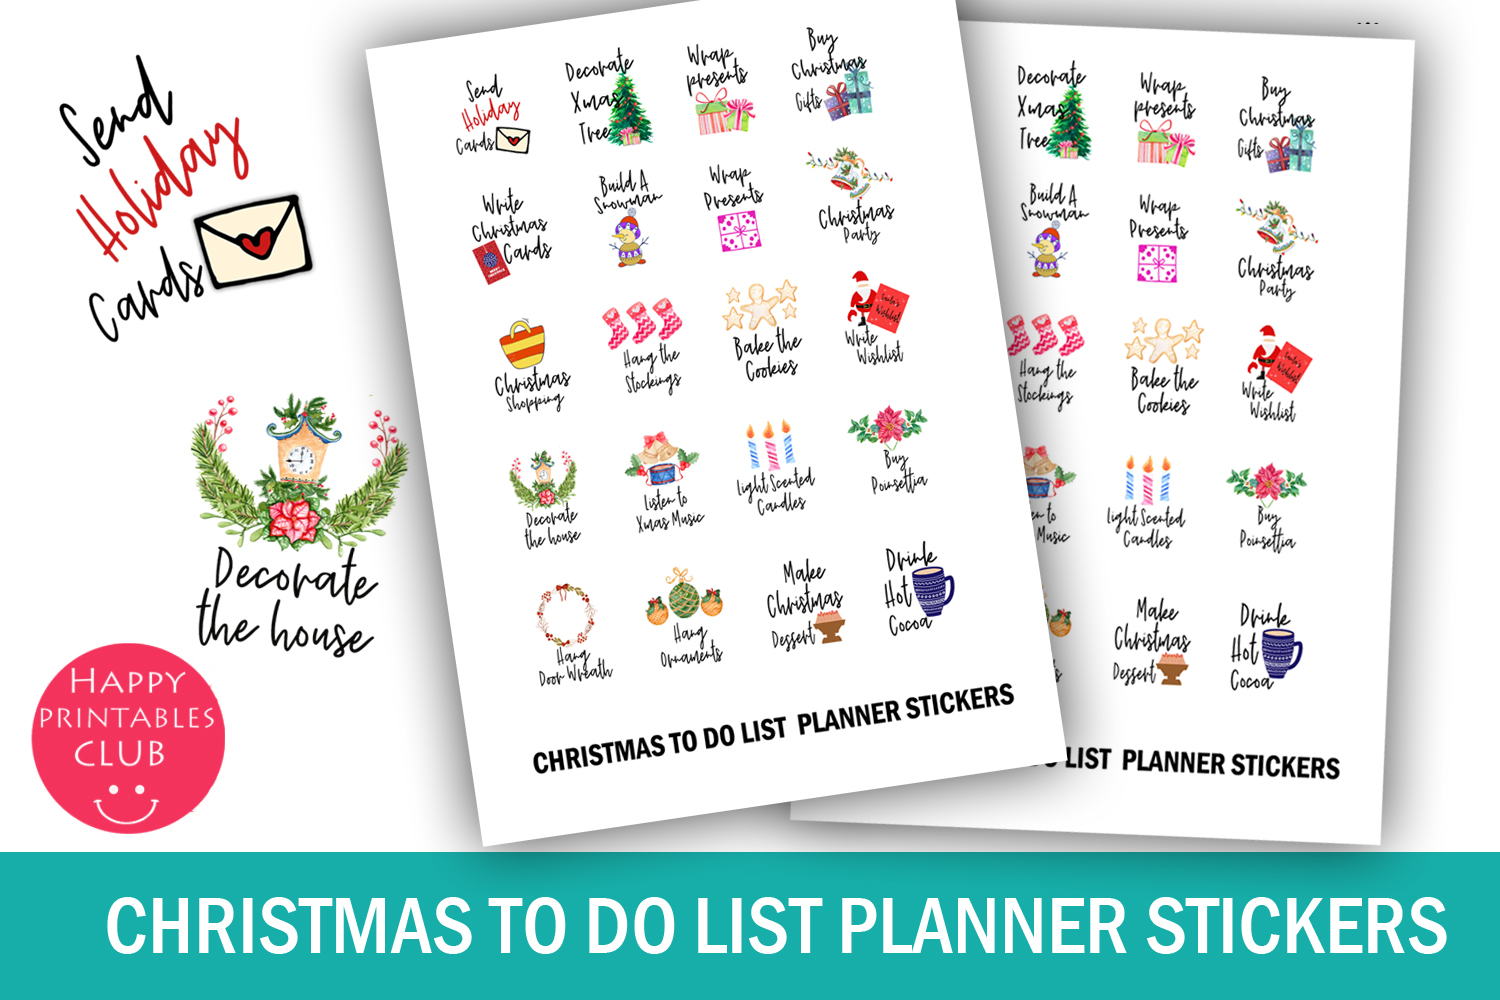 Download Free Christmas To Do List Planner Stickers Decorate The House for Cricut Explore, Silhouette and other cutting machines.